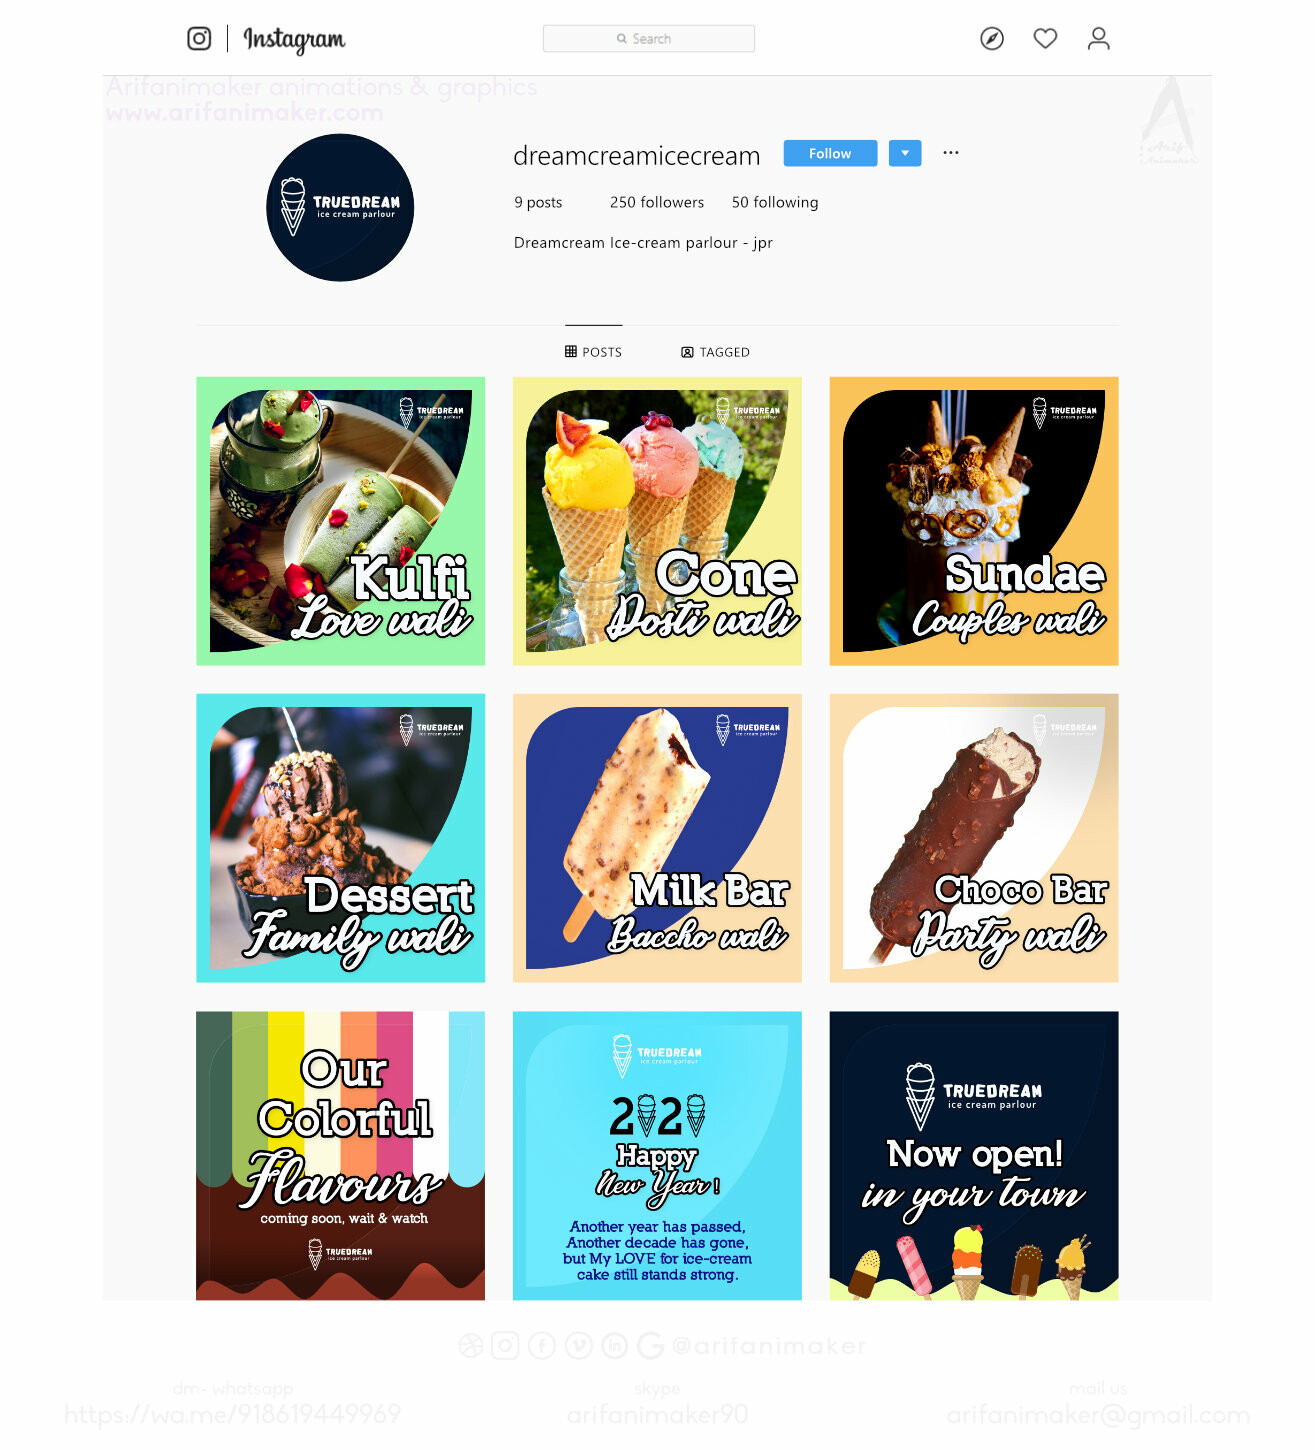 Ice cream parlor - Instagram page overview